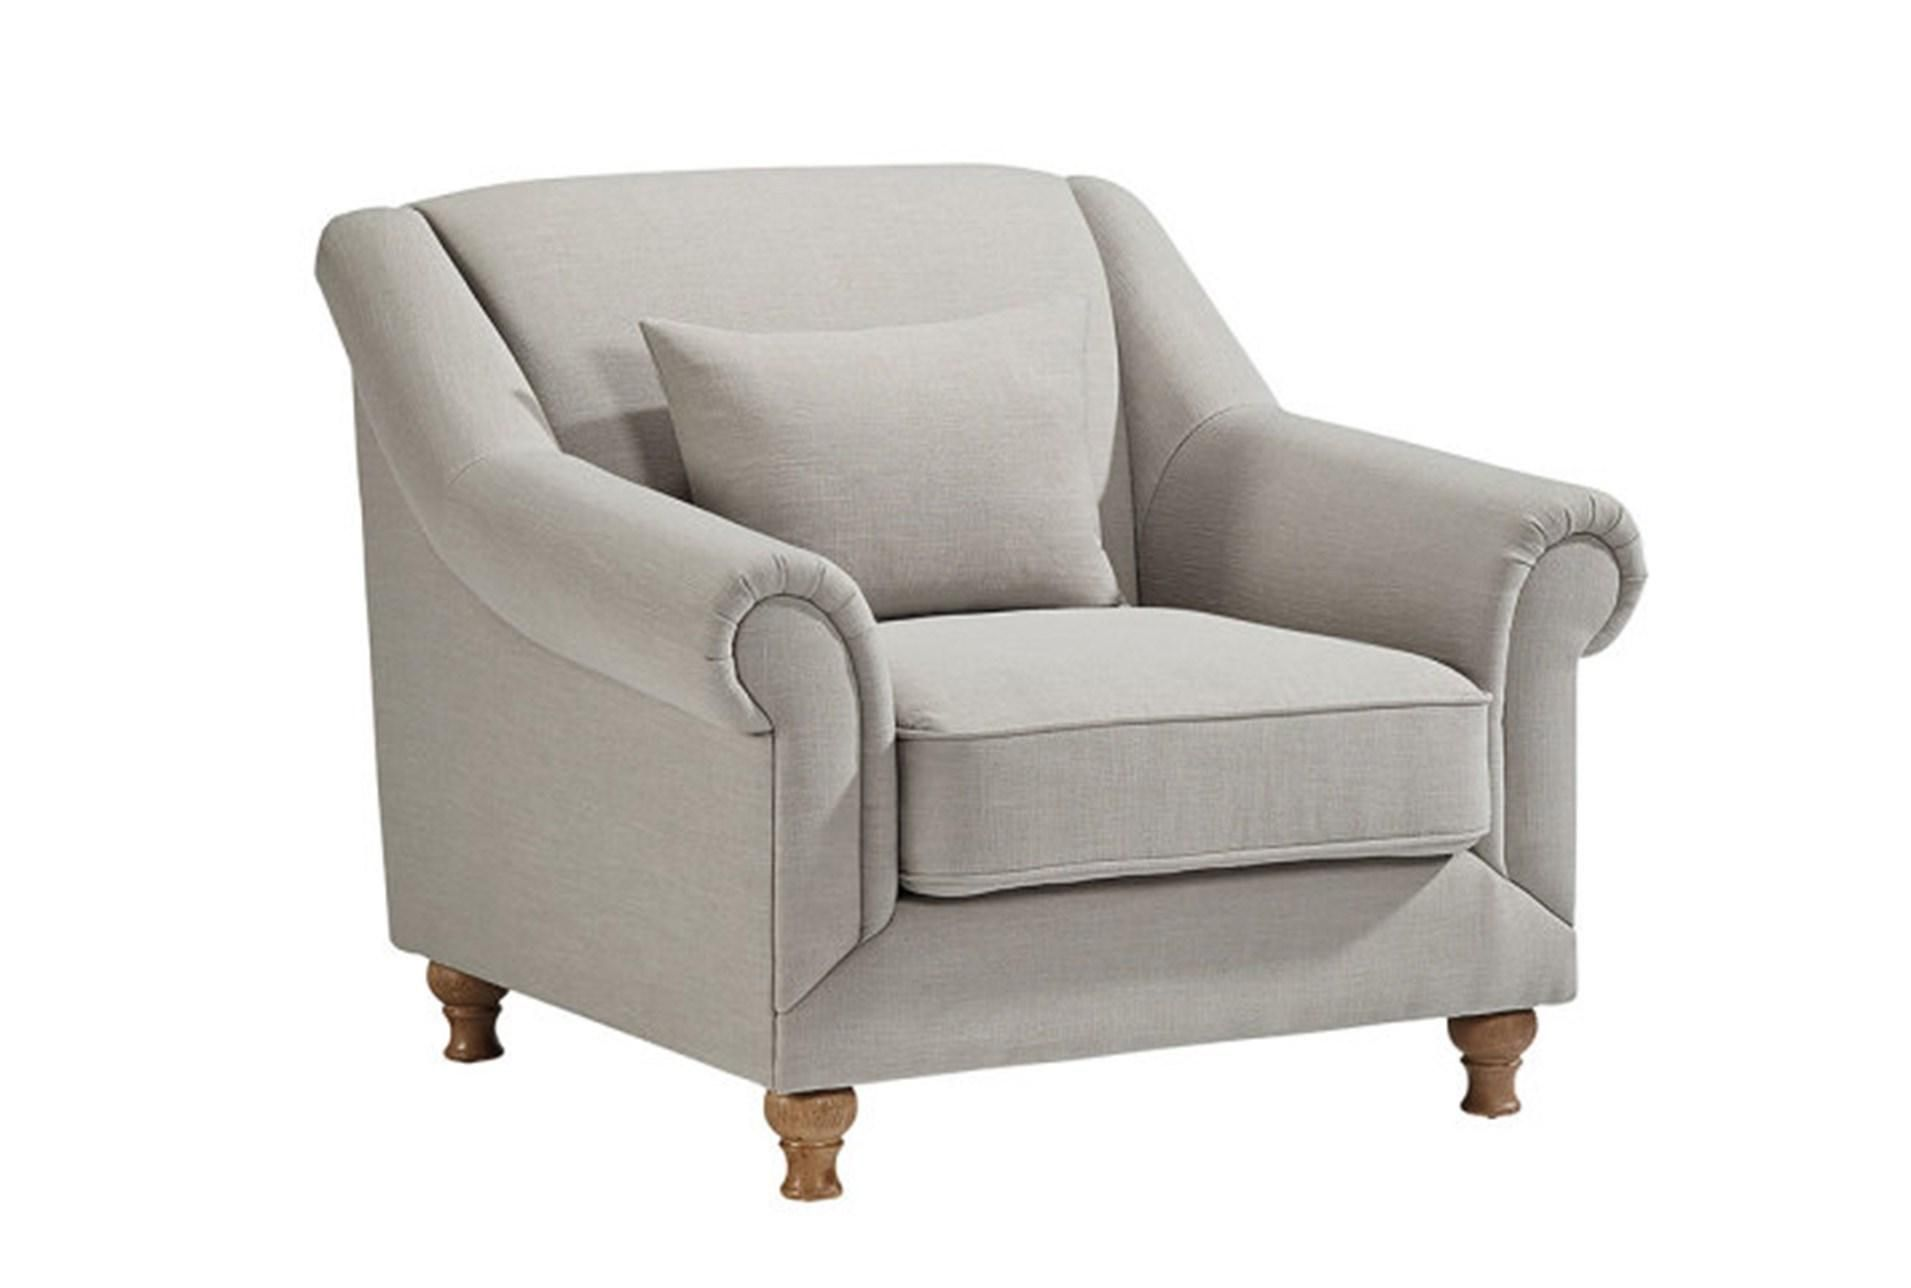 This Rose Hill Upholstered Chair has a timeless look with